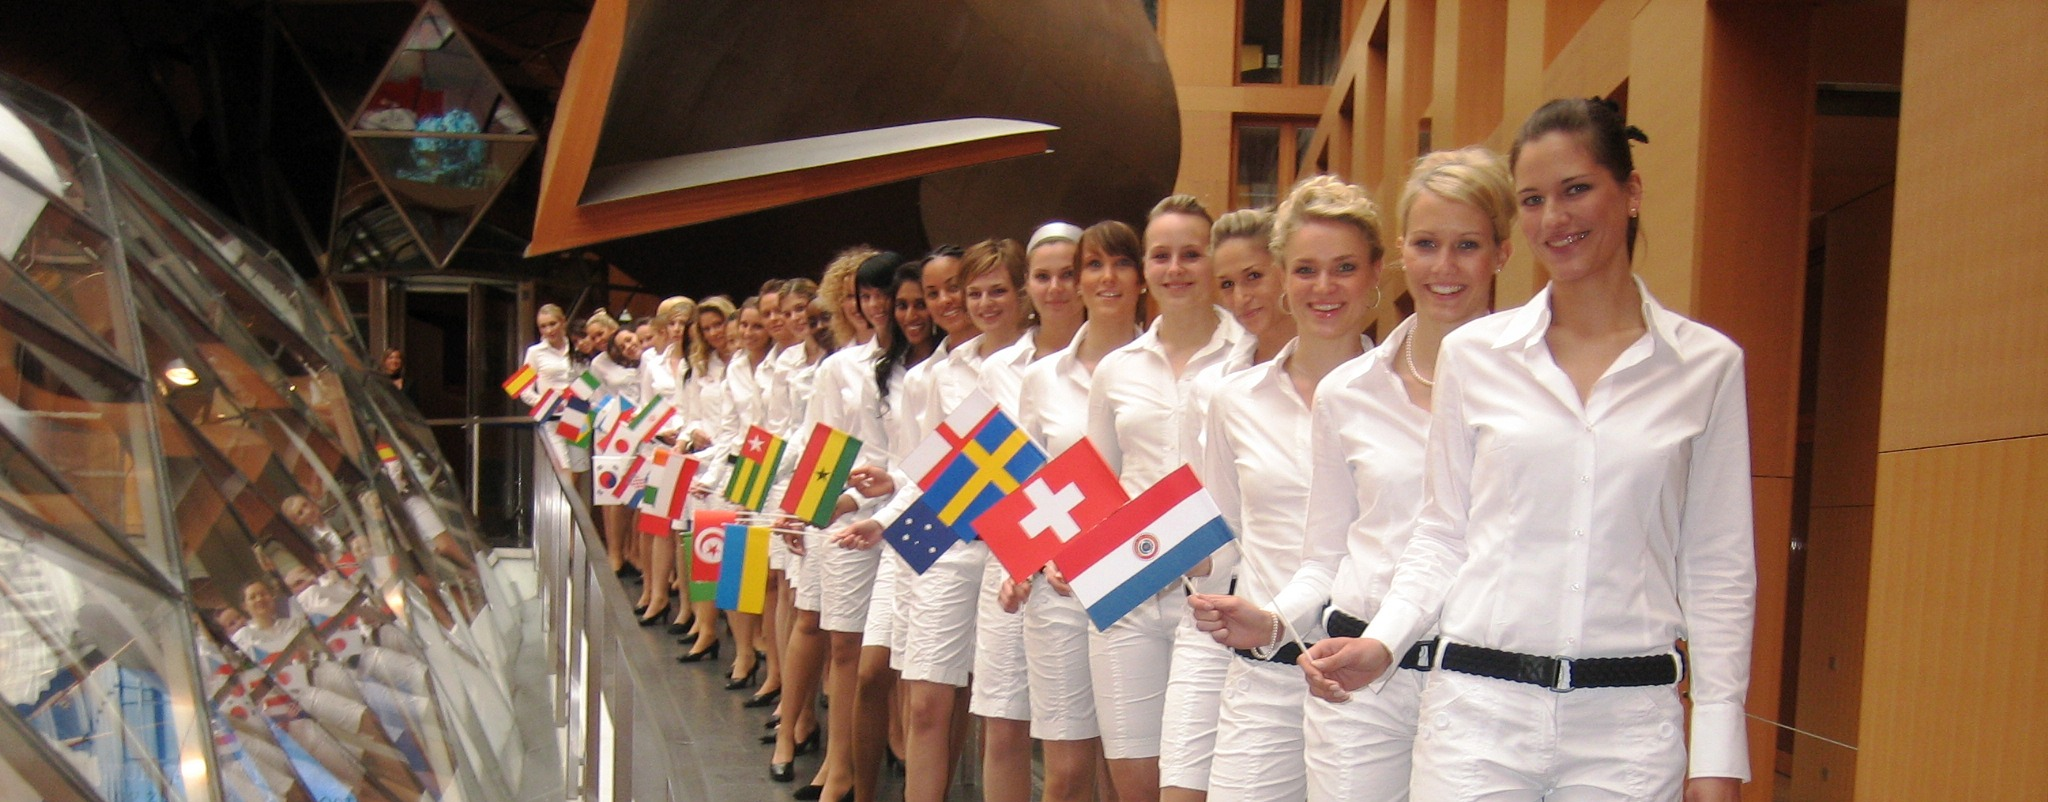 Hostesses For Trade Shows In Amsterdam